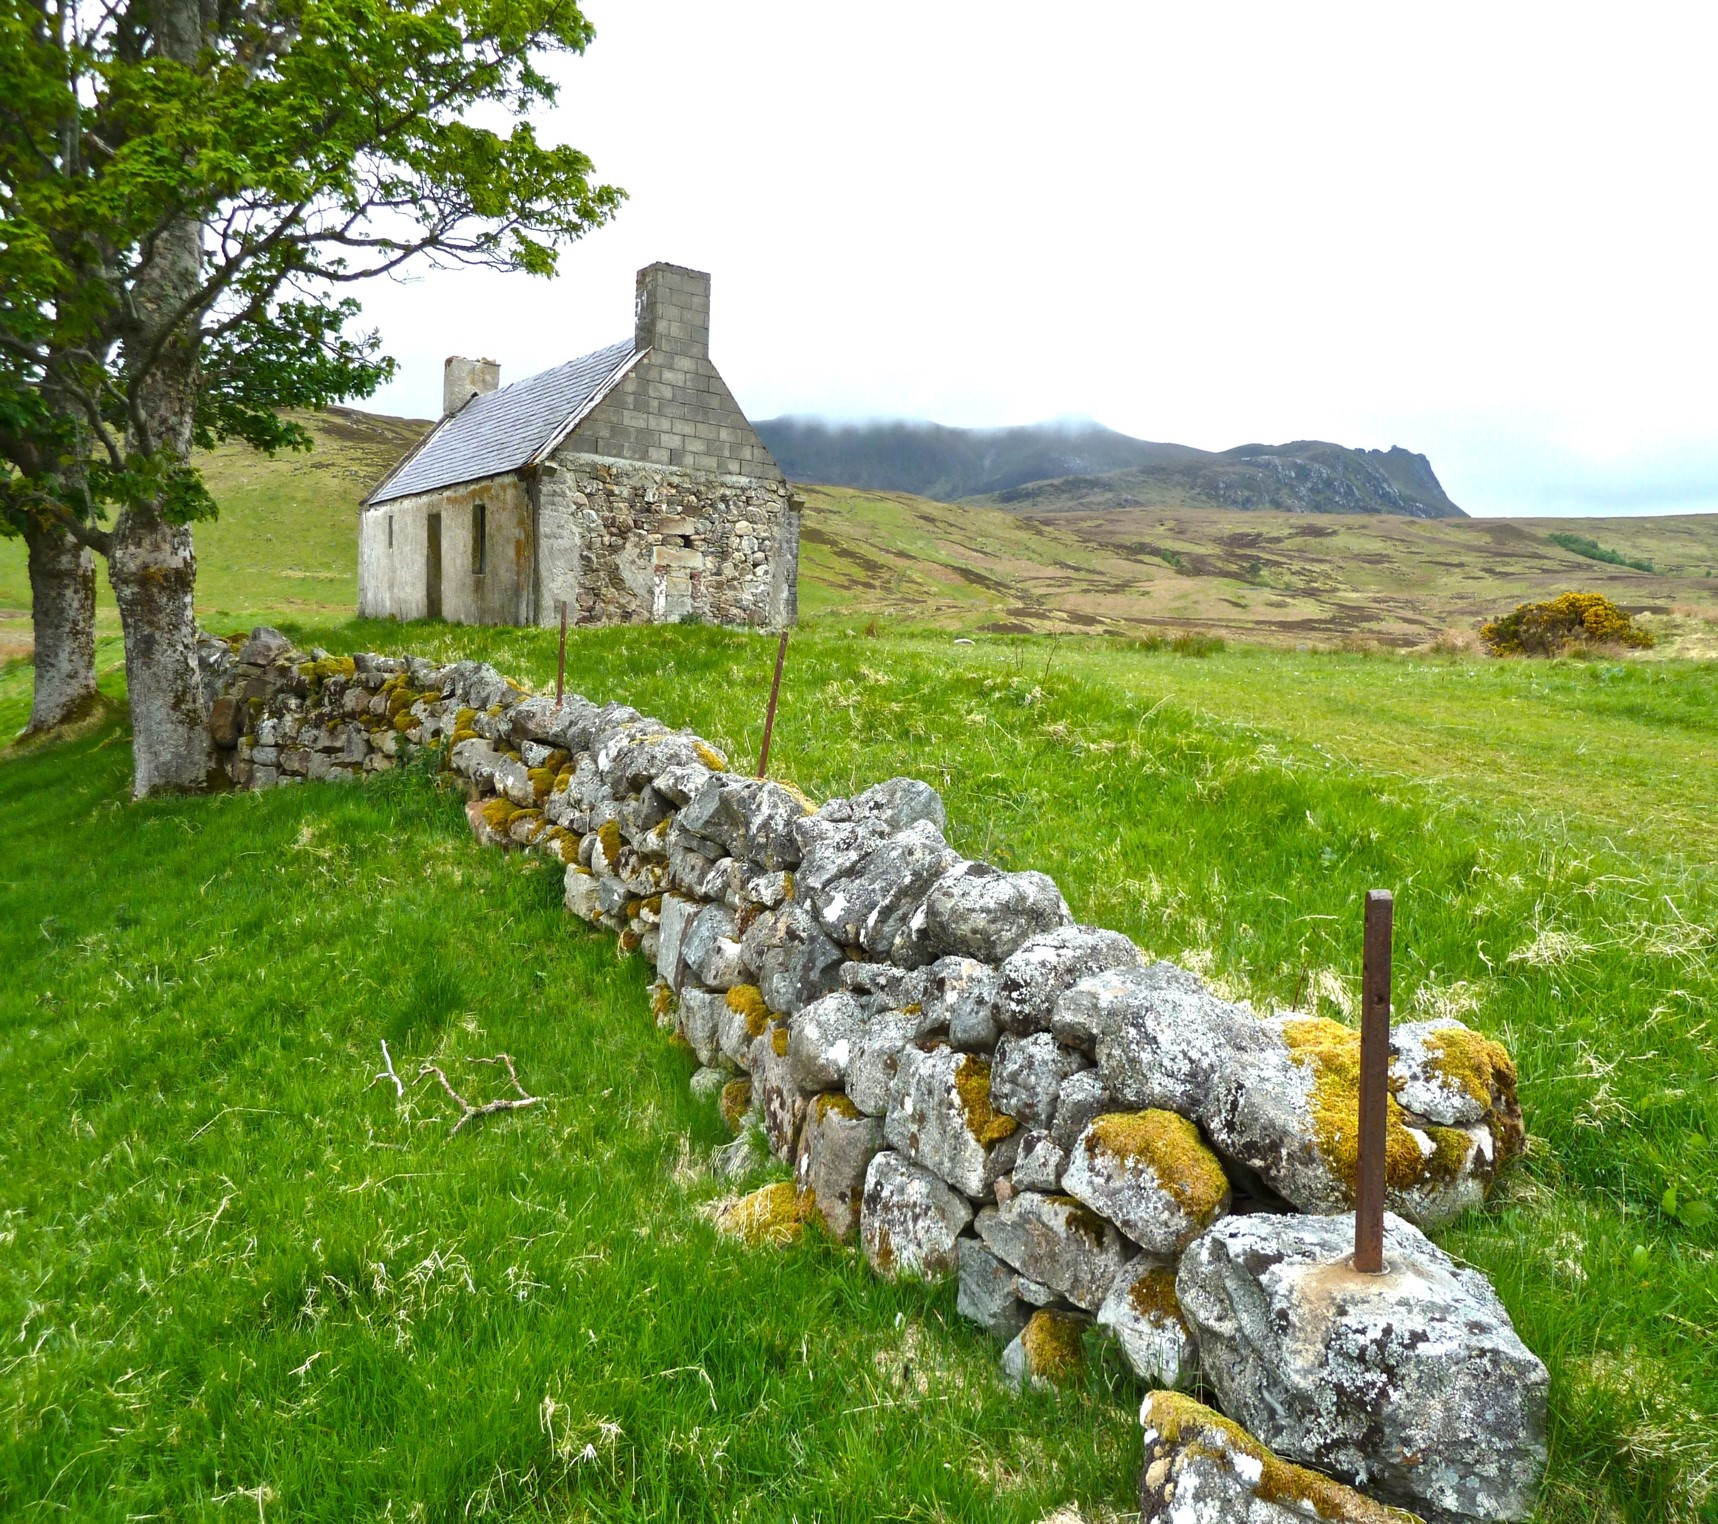 Irish Stone Wall with old Farm House